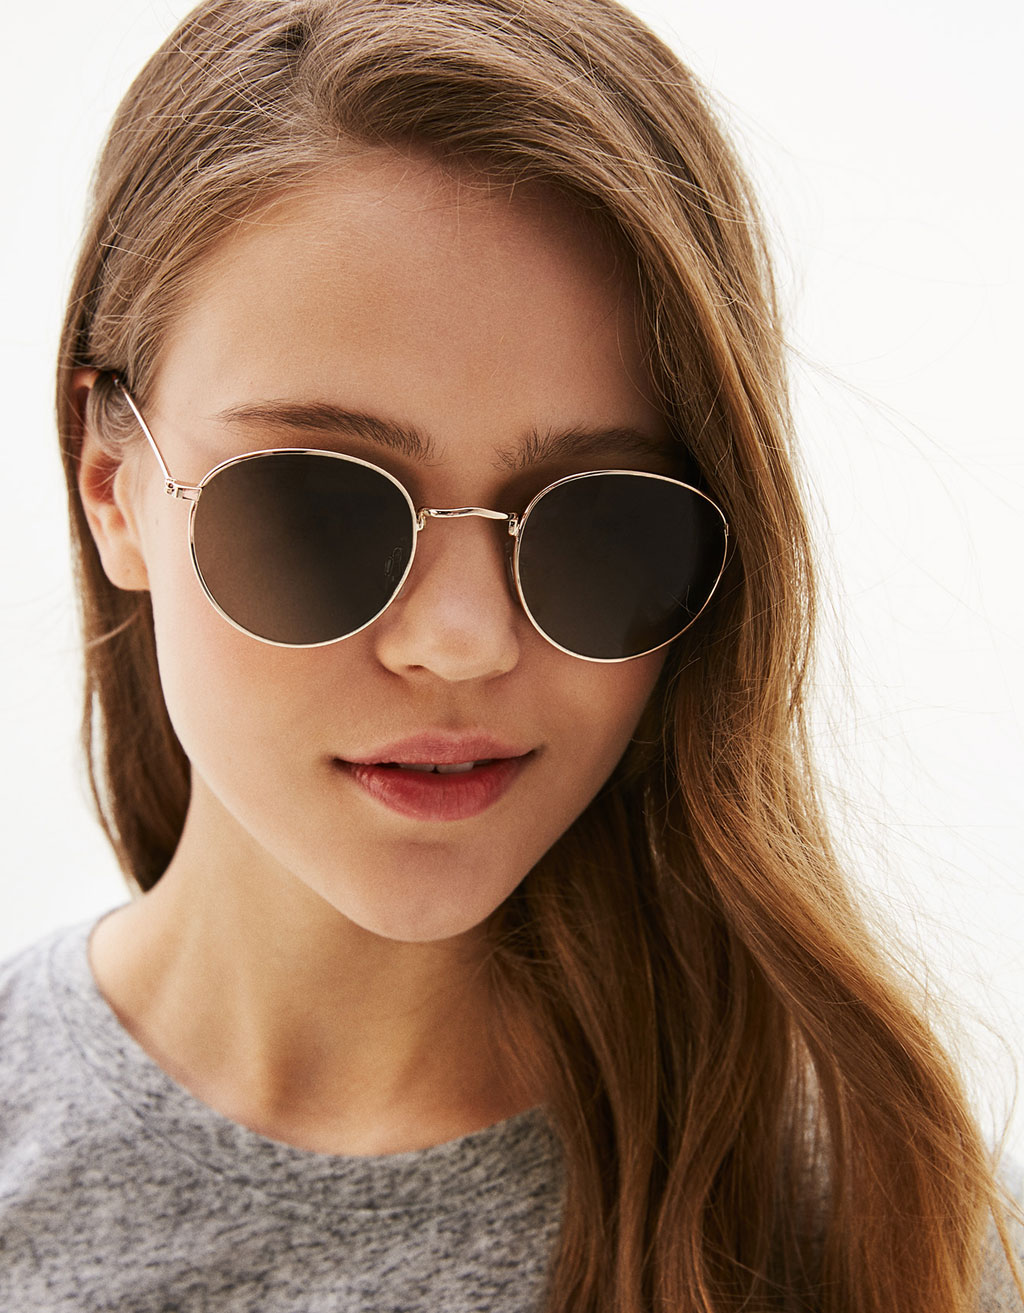 Classic metallic framed sunglasses